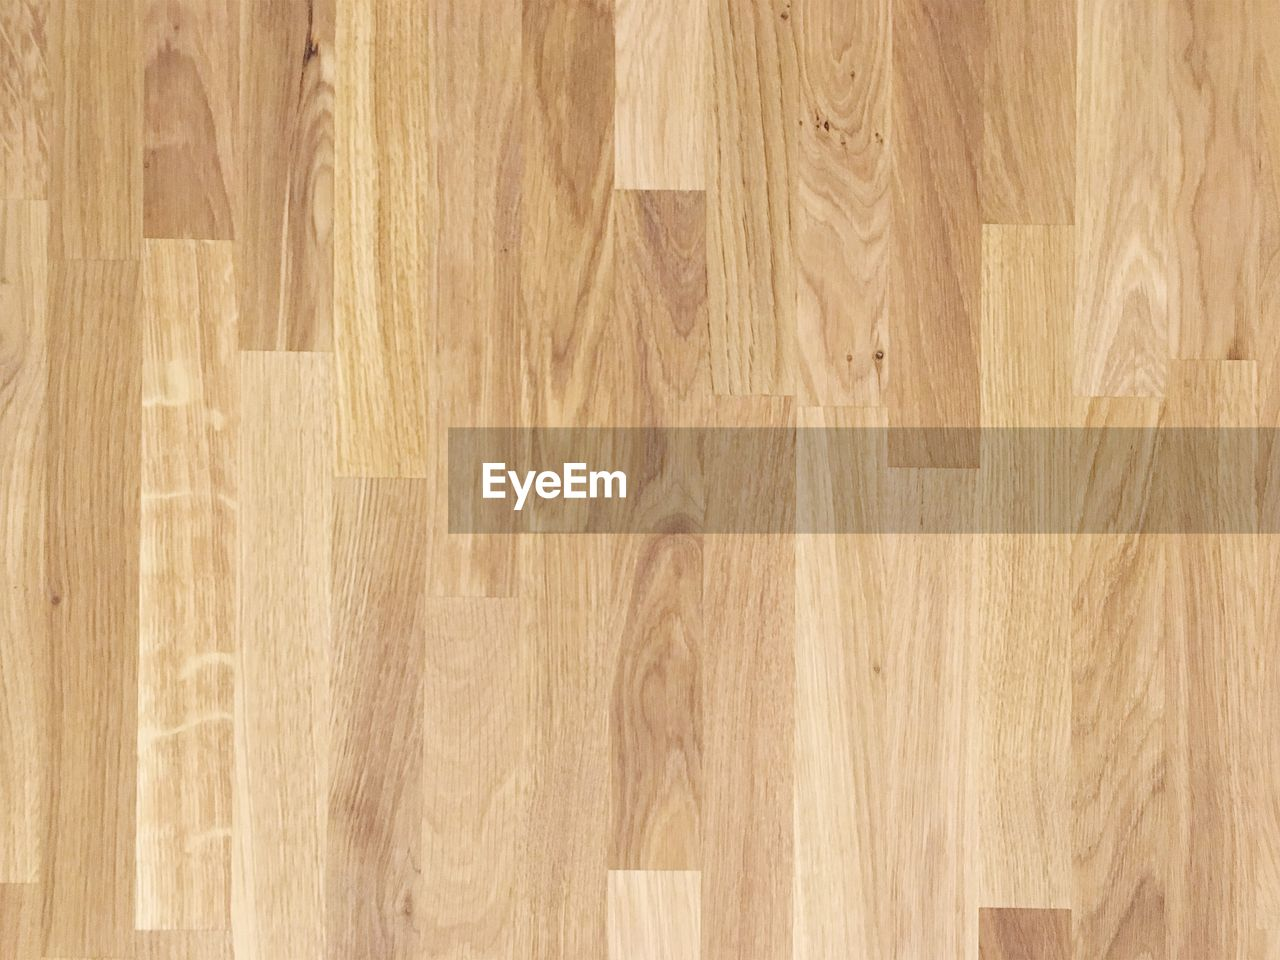 wood, hardwood floor, flooring, wood - material, wood grain, backgrounds, pattern, parquet floor, hardwood, textured, indoors, no people, full frame, home interior, brown, wood paneling, close-up, plank, material, wood laminate flooring, textured effect, surface level, blank